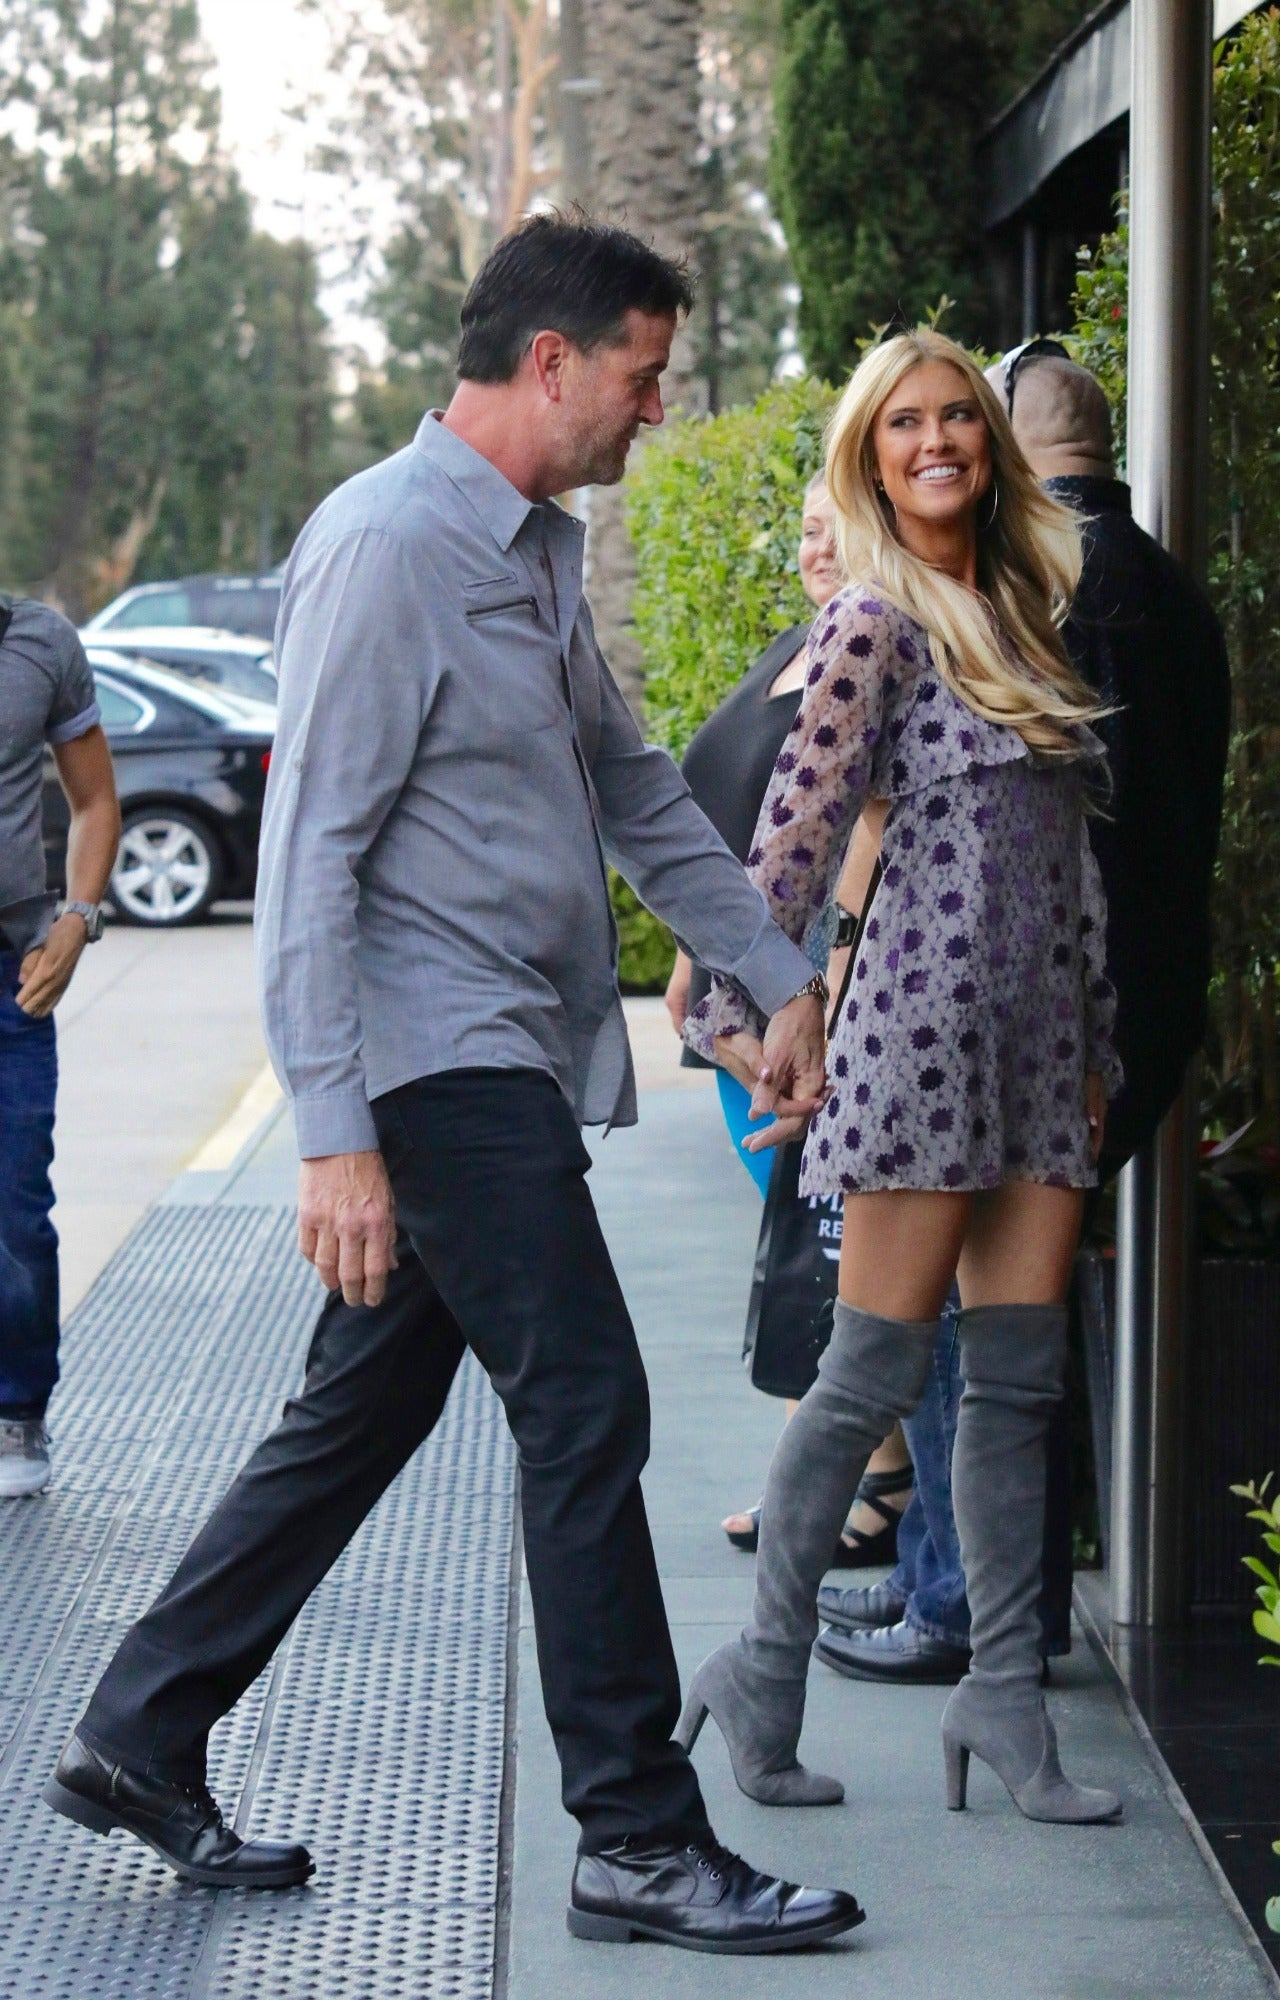 christina el moussa is all smiles while holding hands with new man